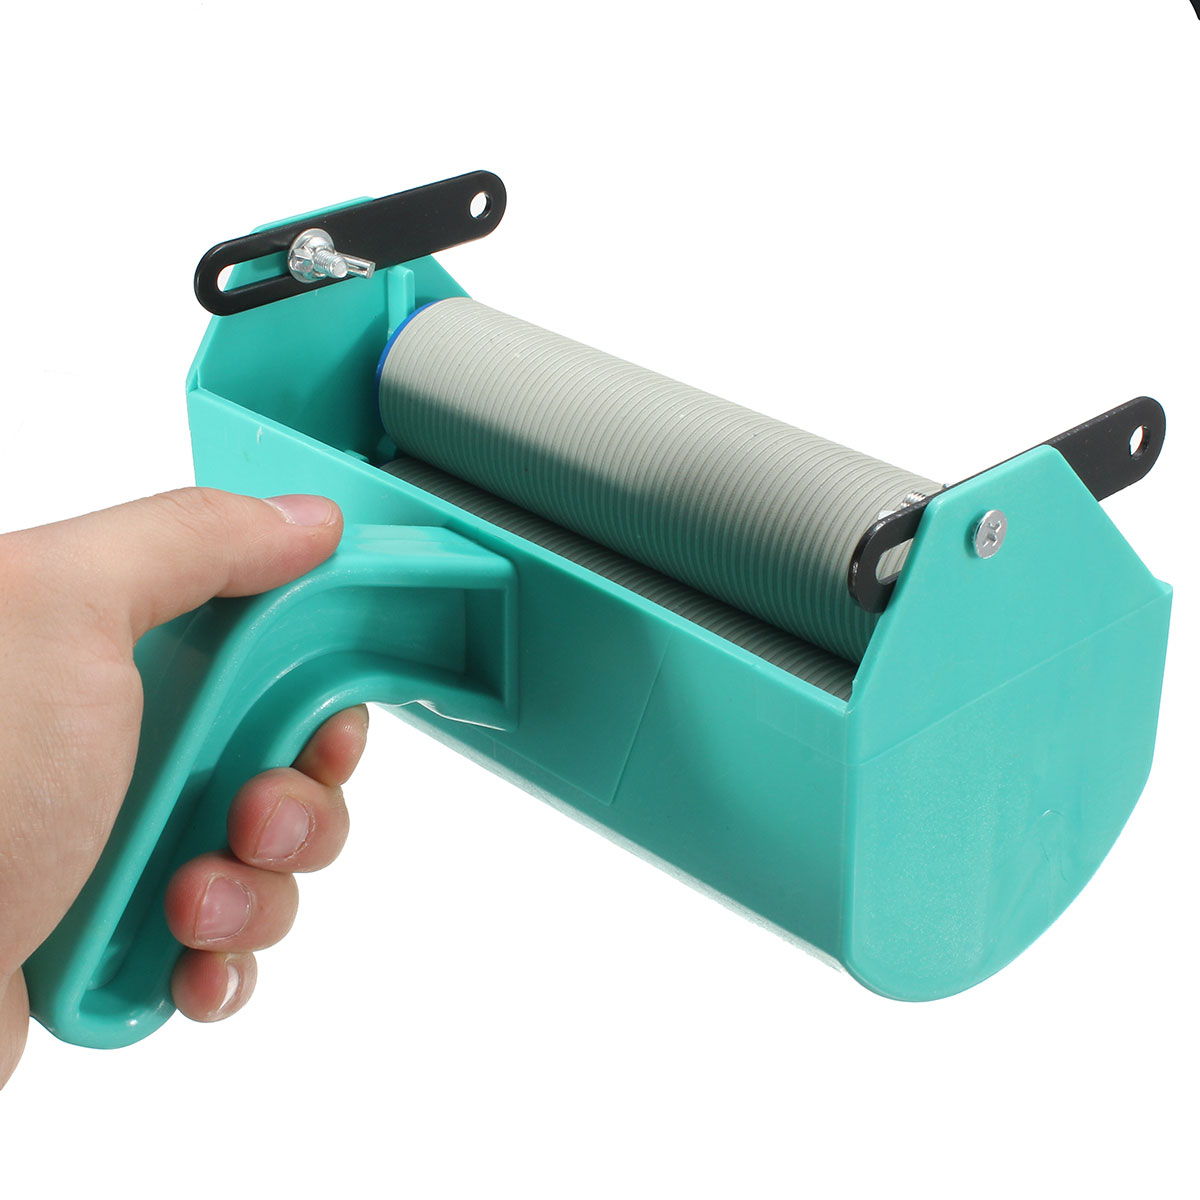 Single Küchenzeile Roller ~ wall roller brush single color decoration painting tool alex